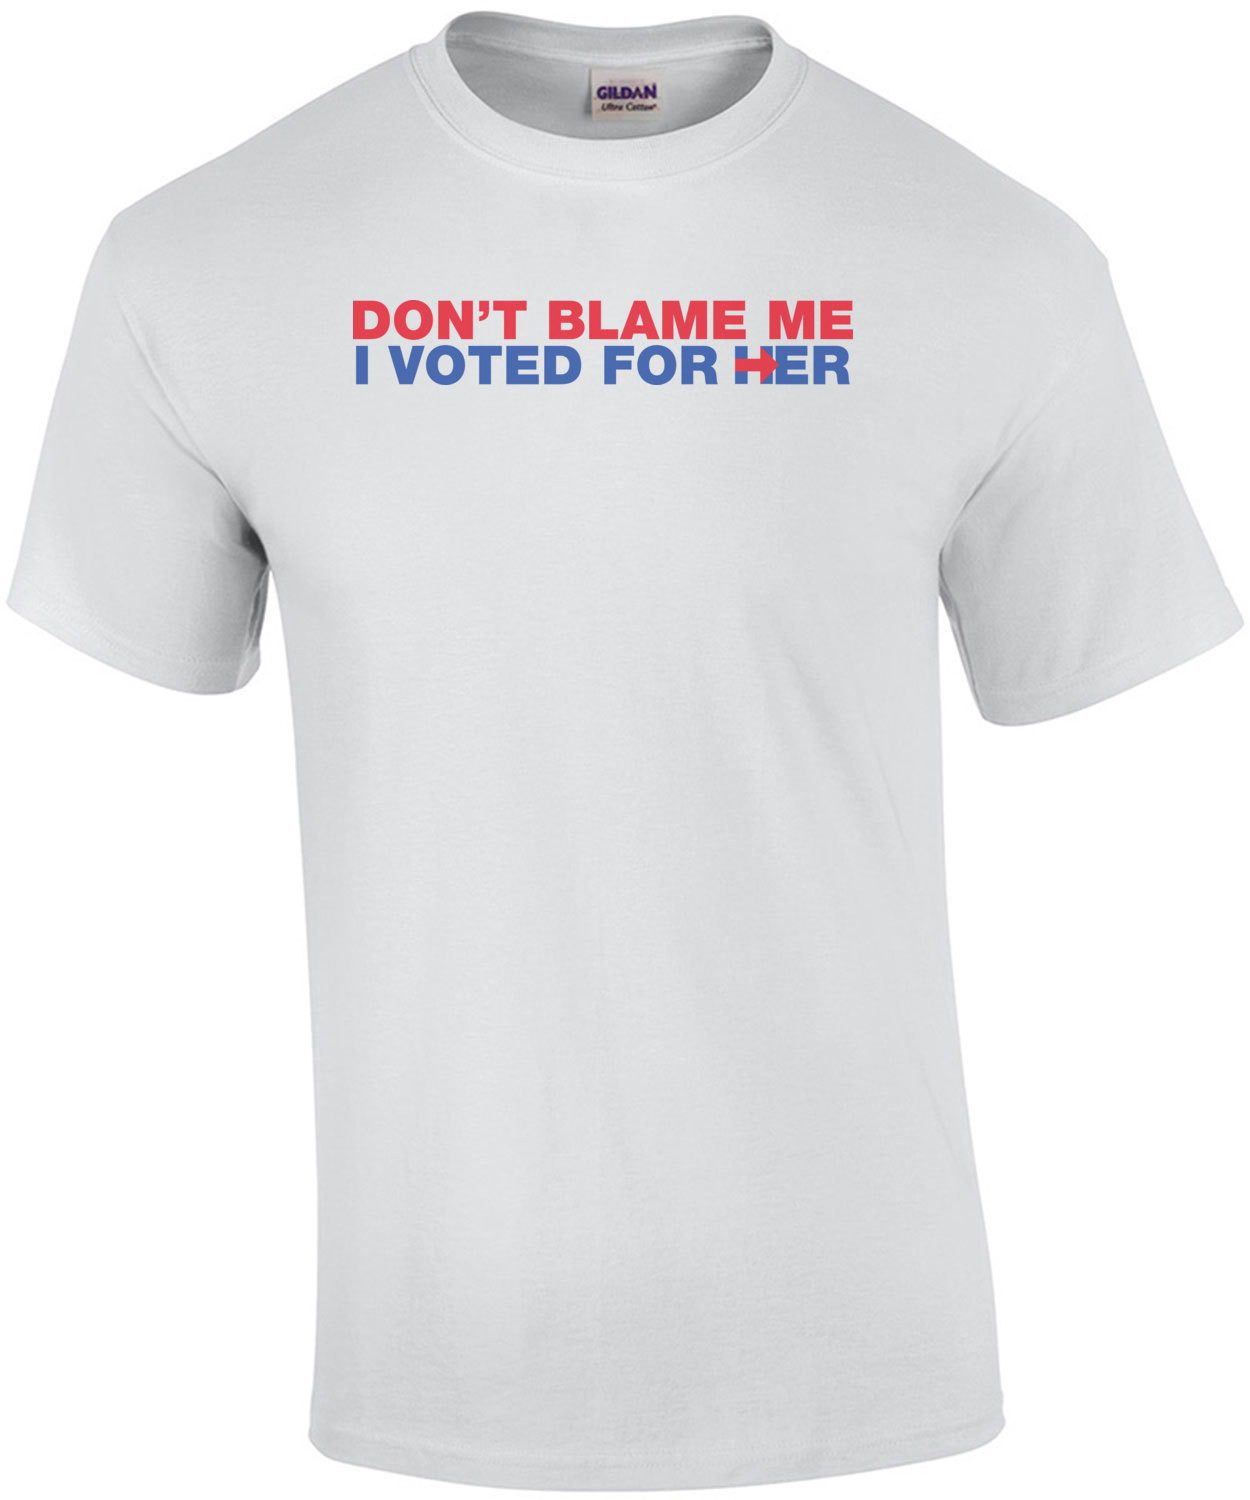 Don't Blame Me, I Voted For Her - Hillary Anti Trump Shirt